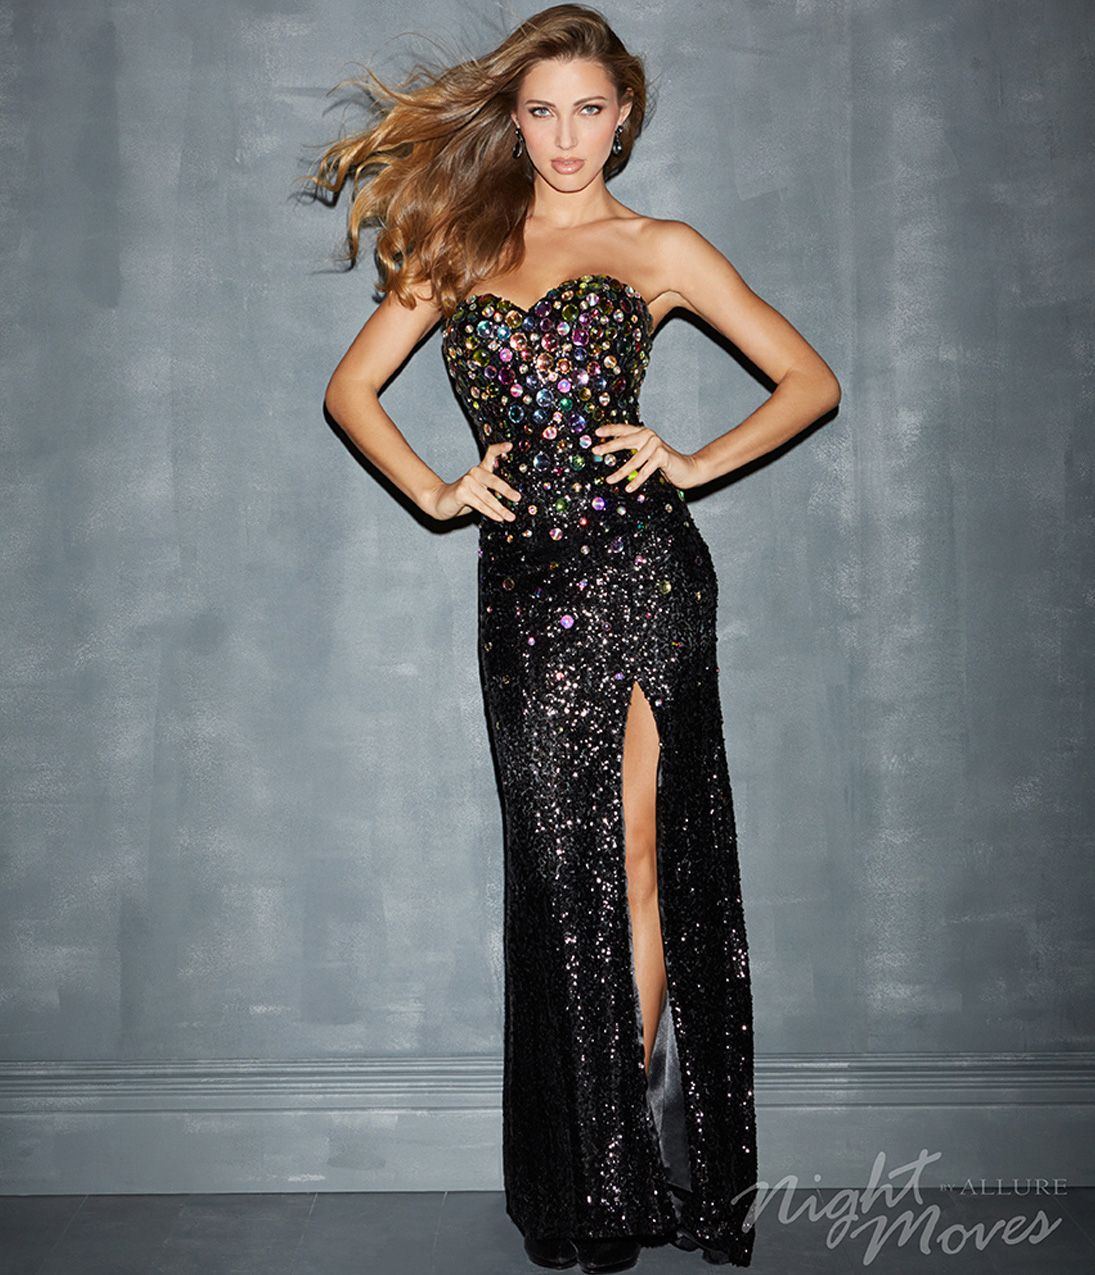 Images of Black Sequin Prom Dress - Reikian